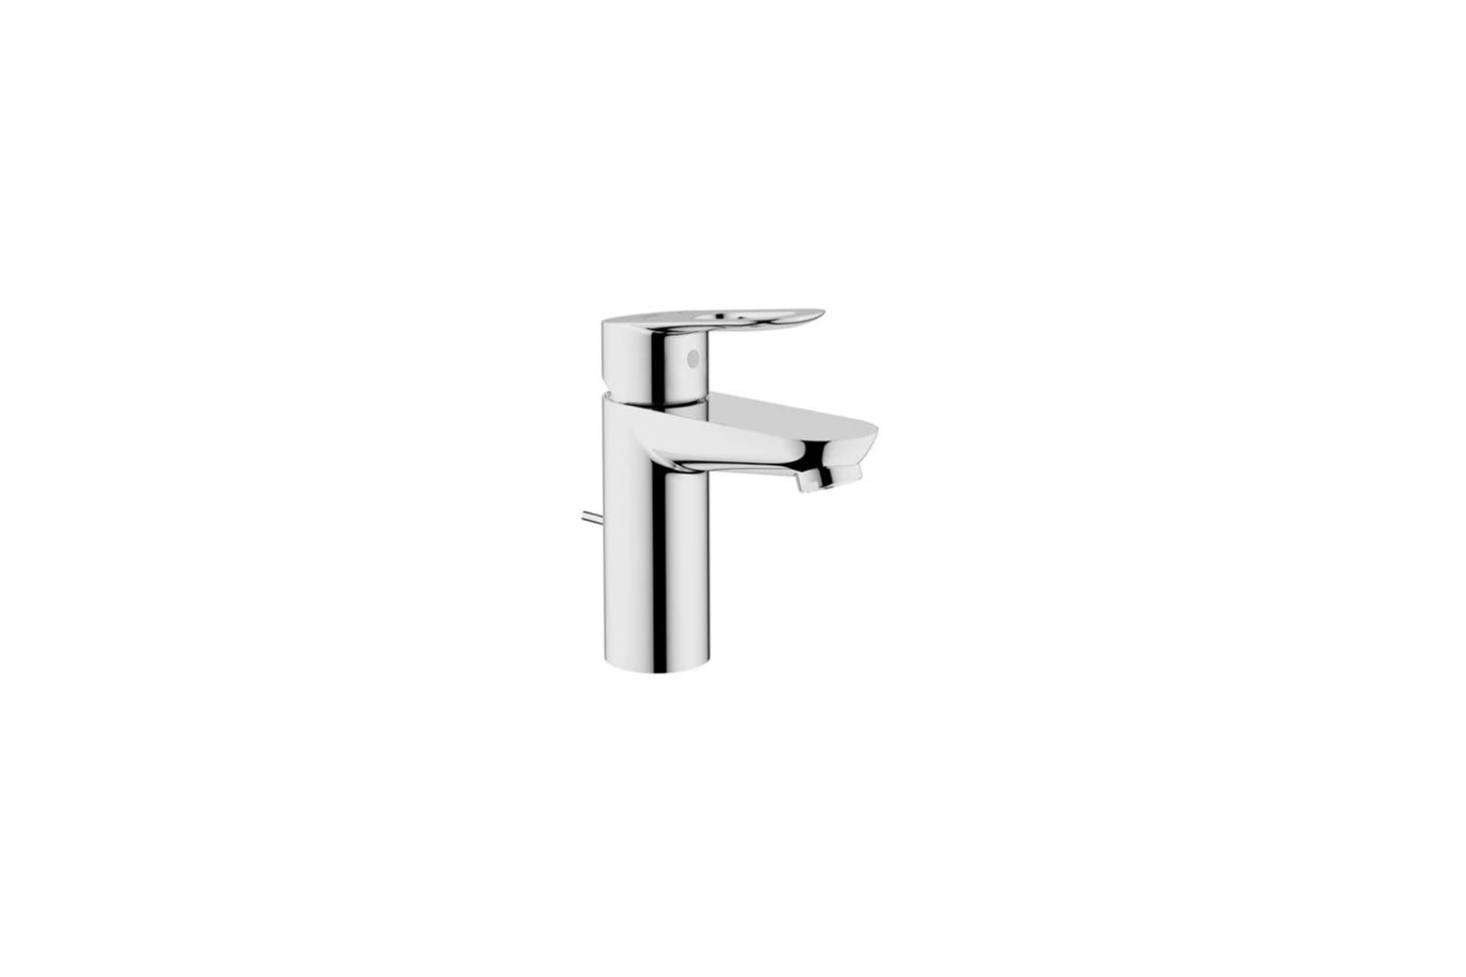 The bathroom sink faucet is the Grohe Starlight Chrome BauLoop Single Hole Bathroom Faucet for $data-src=